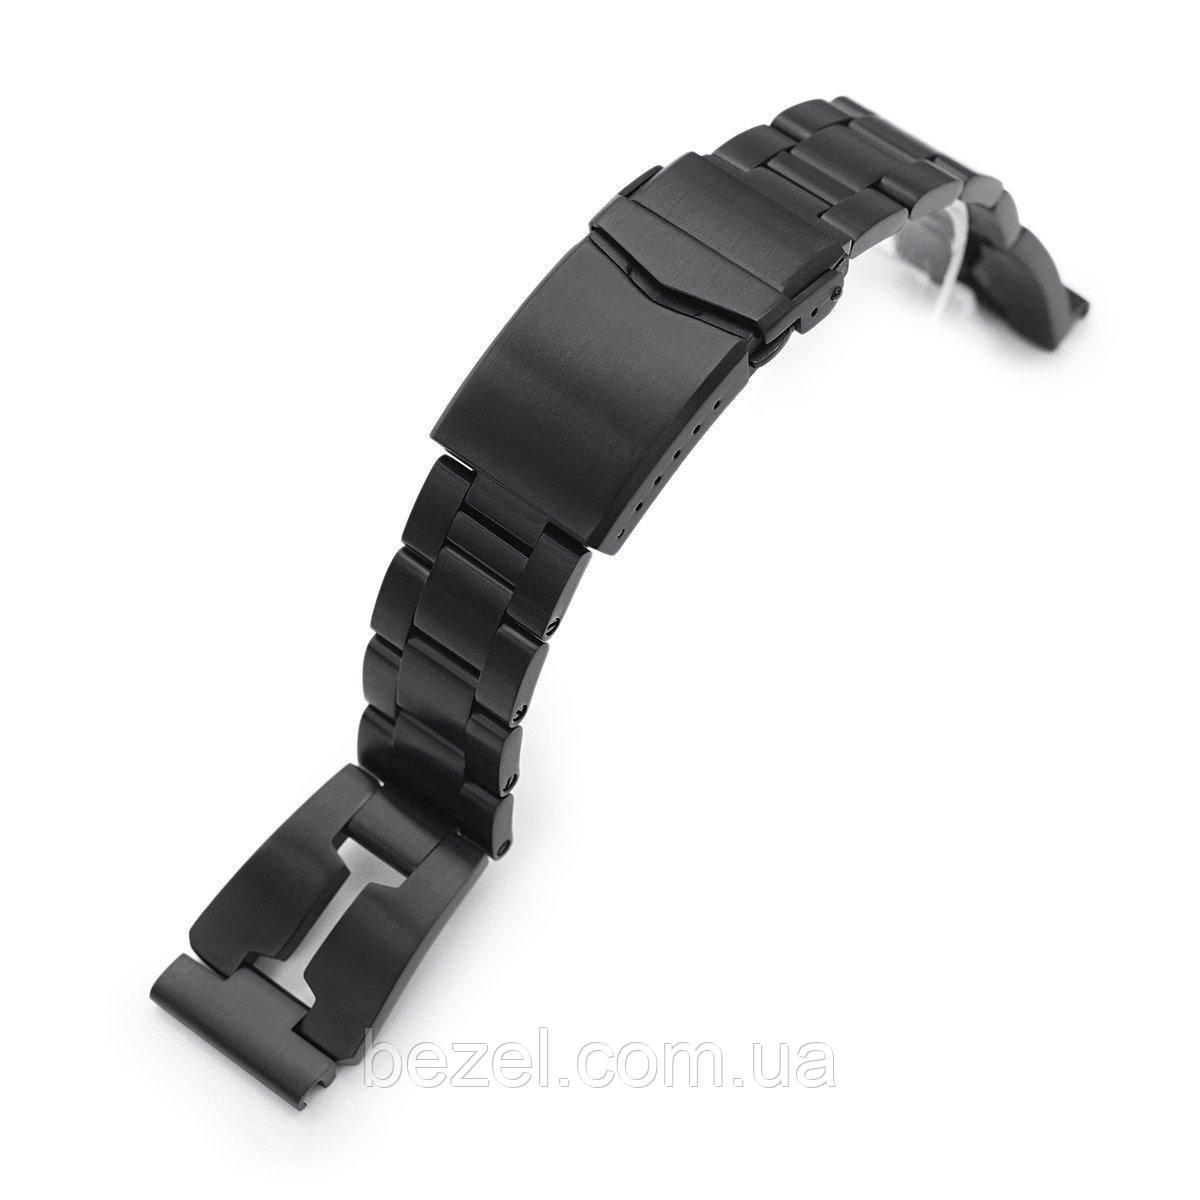 20mm Reissue Retro Razor 316L Stainless Steel PVD Black Watch Band, V-Clasp Button Double Lock